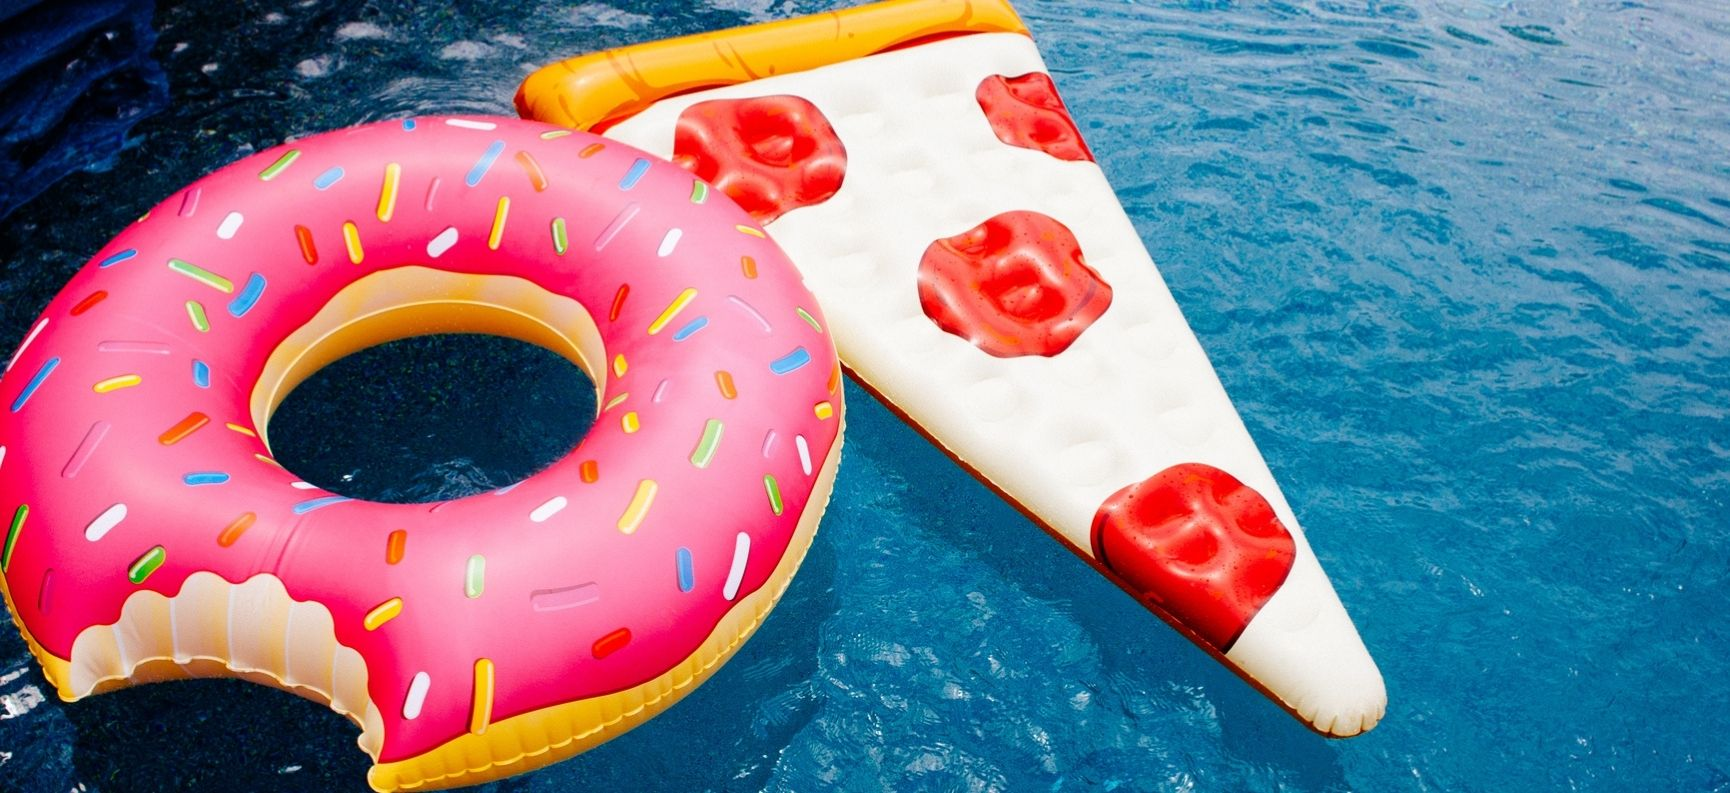 Two floats in a swimming pool, one shaped like a donut with a bite taken out of it, one like a pizza slice, very close together